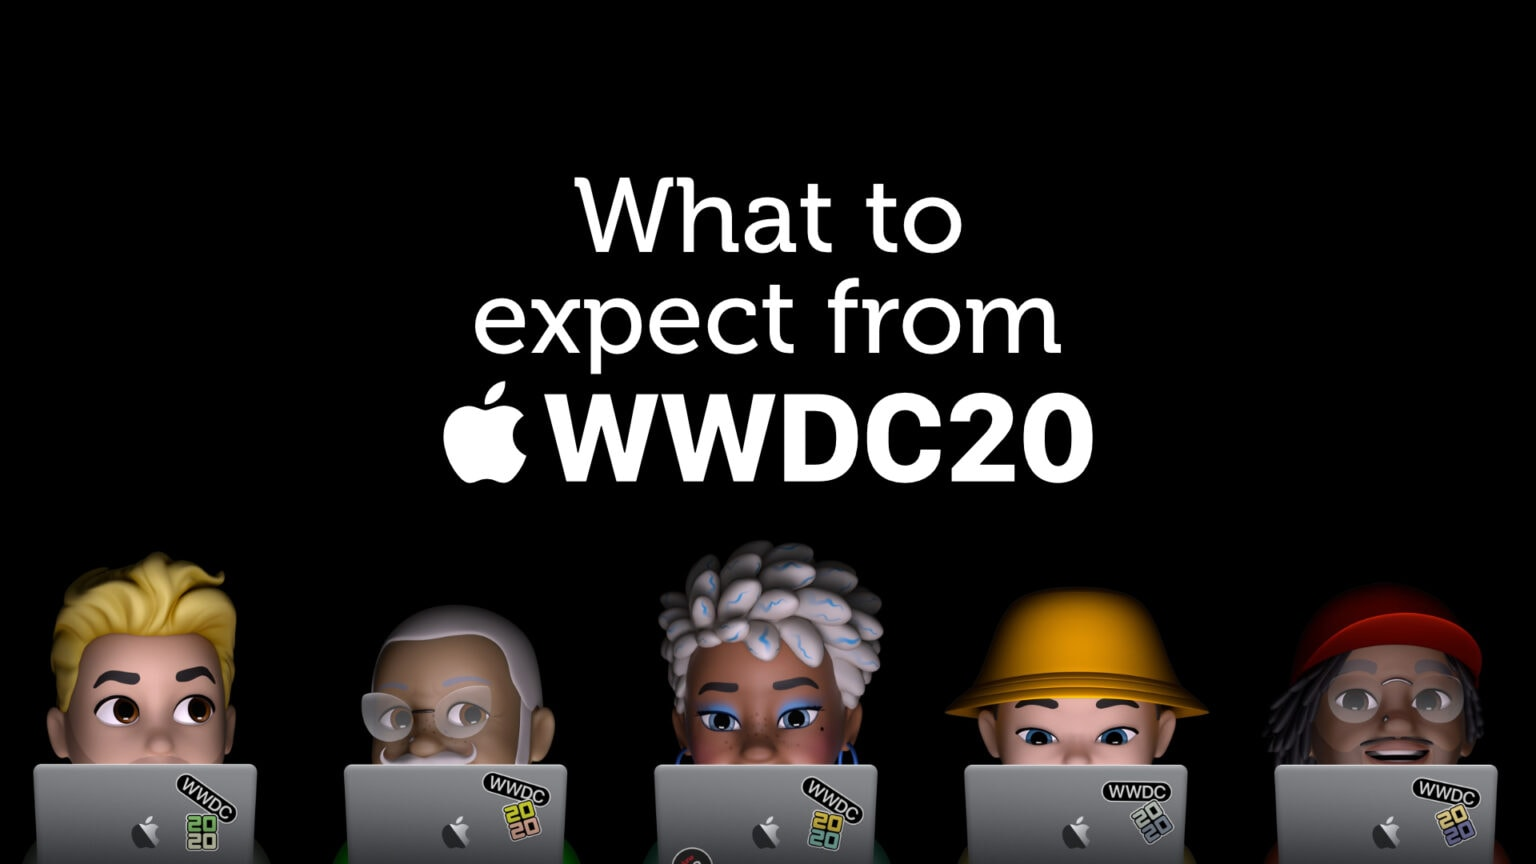 WWDC 2020: What to expect at Apple's big developer conference.